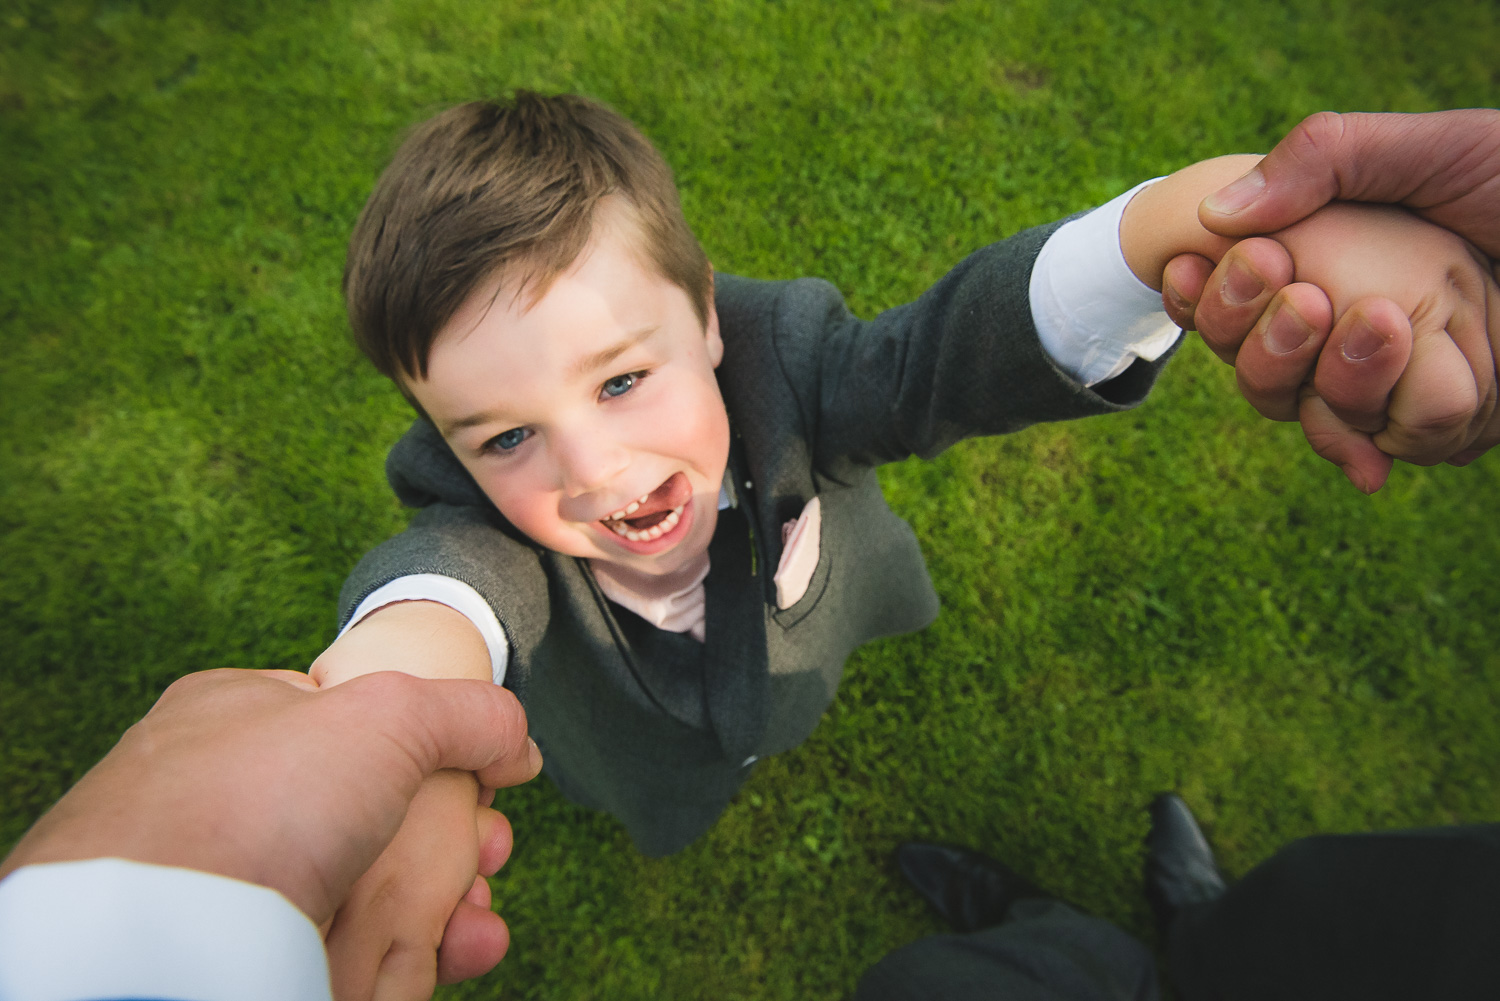 creative wedding photograph of child at wedding playing games